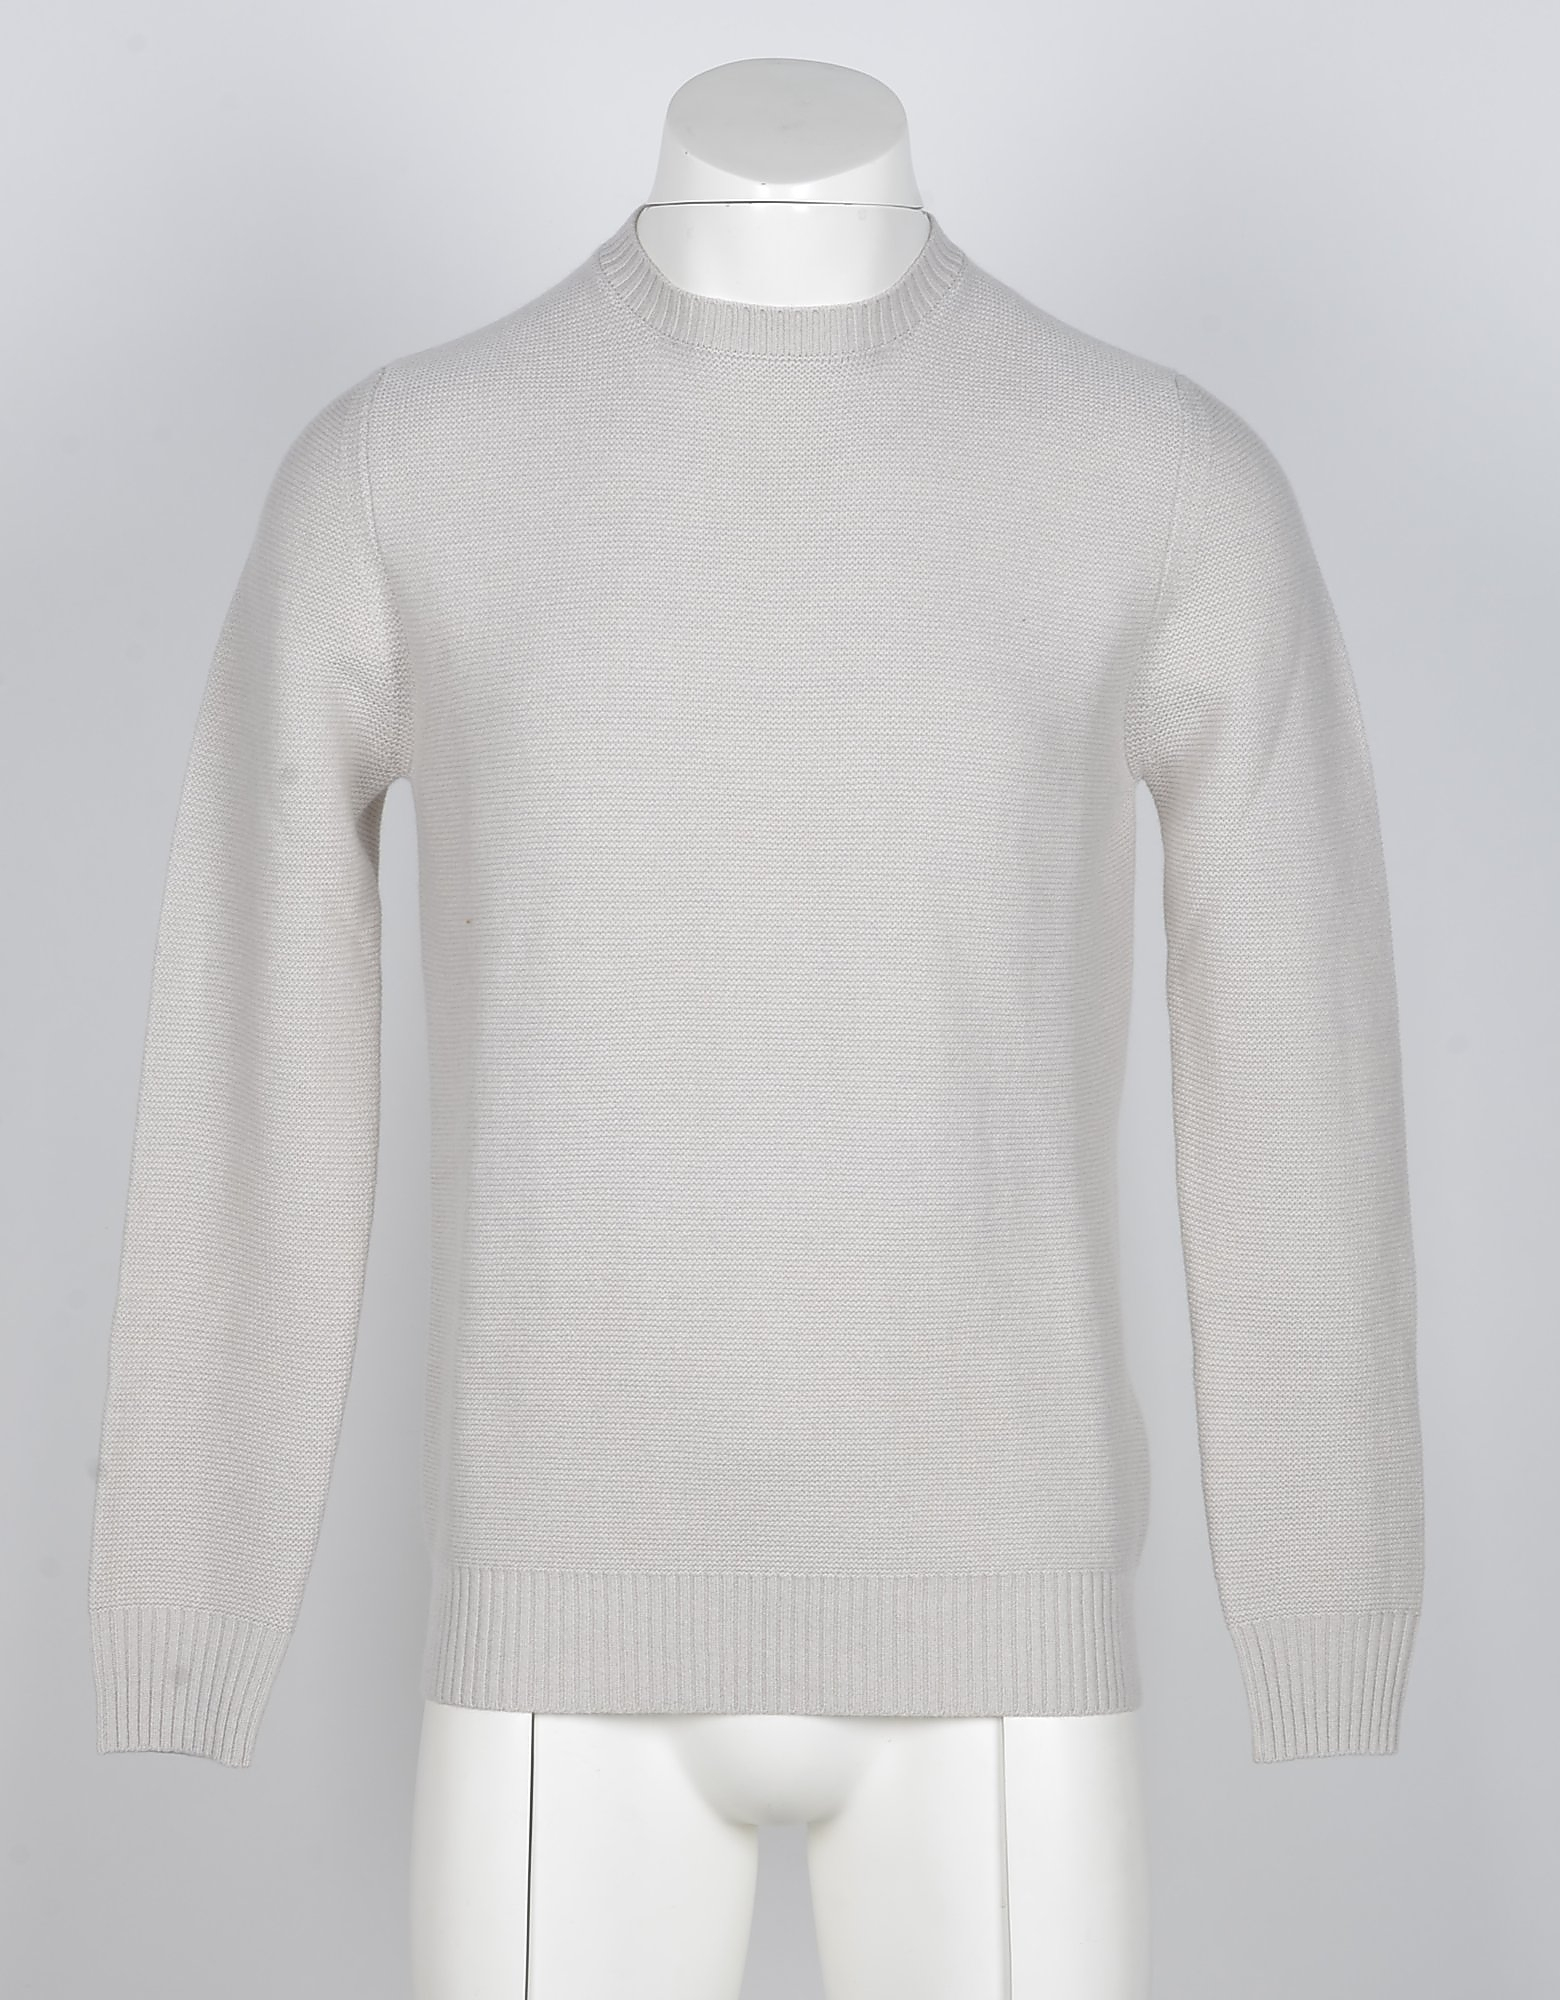 Alpha Studio Designer Knitwear, Beige Wool and Cashmere Men's Sweater